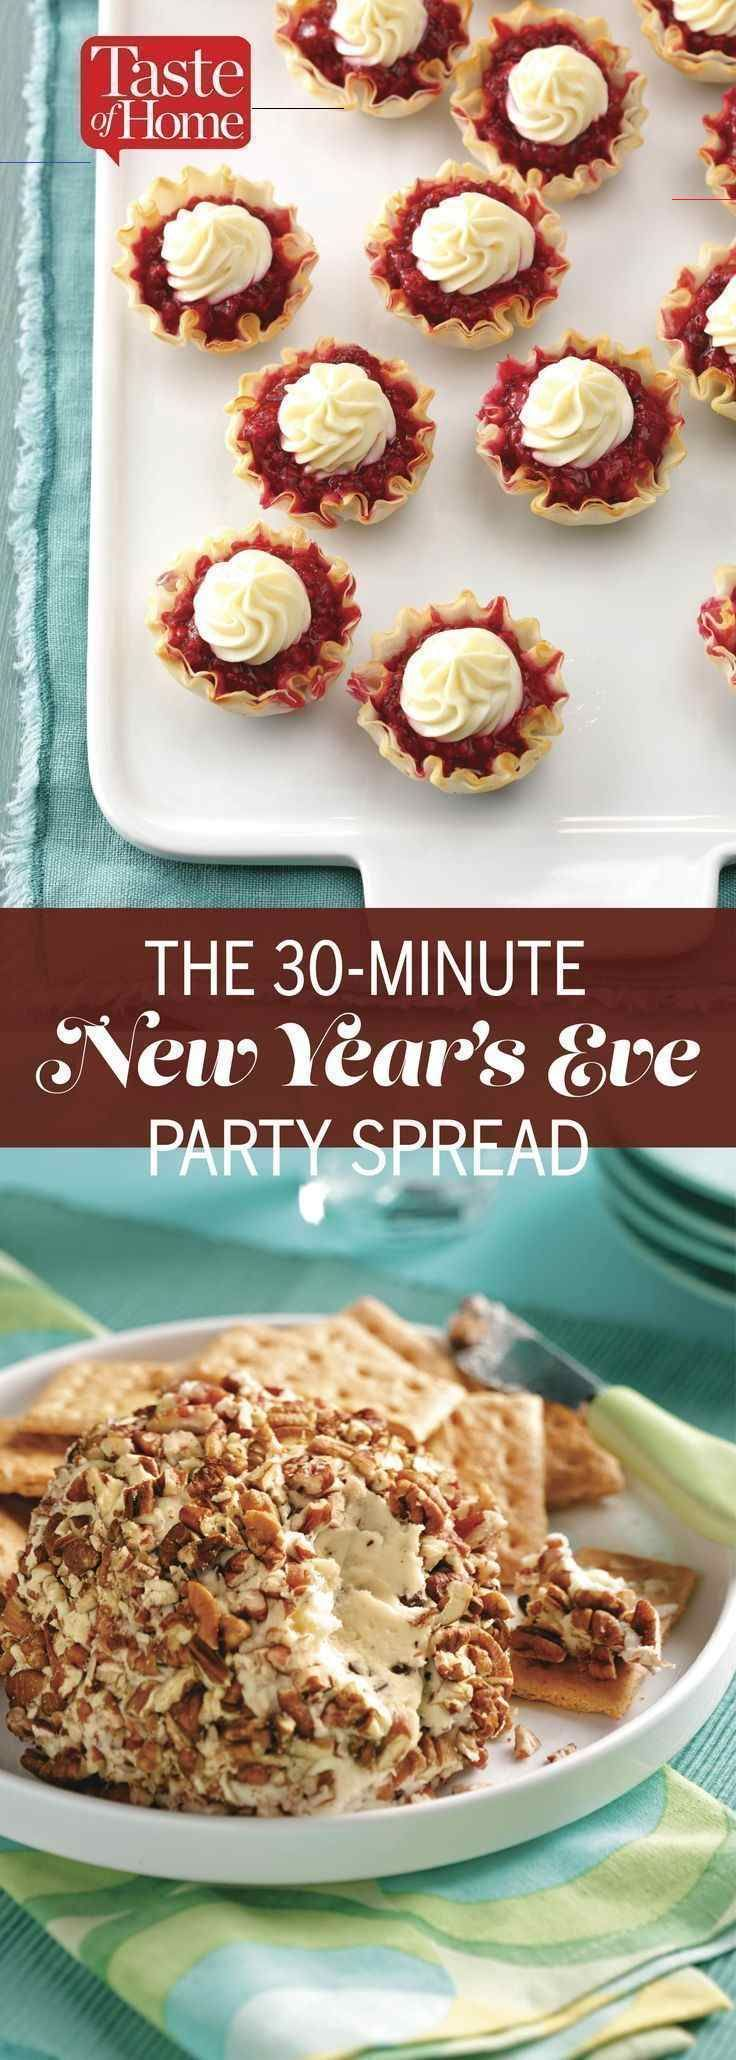 newyearsevepartyideasfood in 2020 New years eve snacks